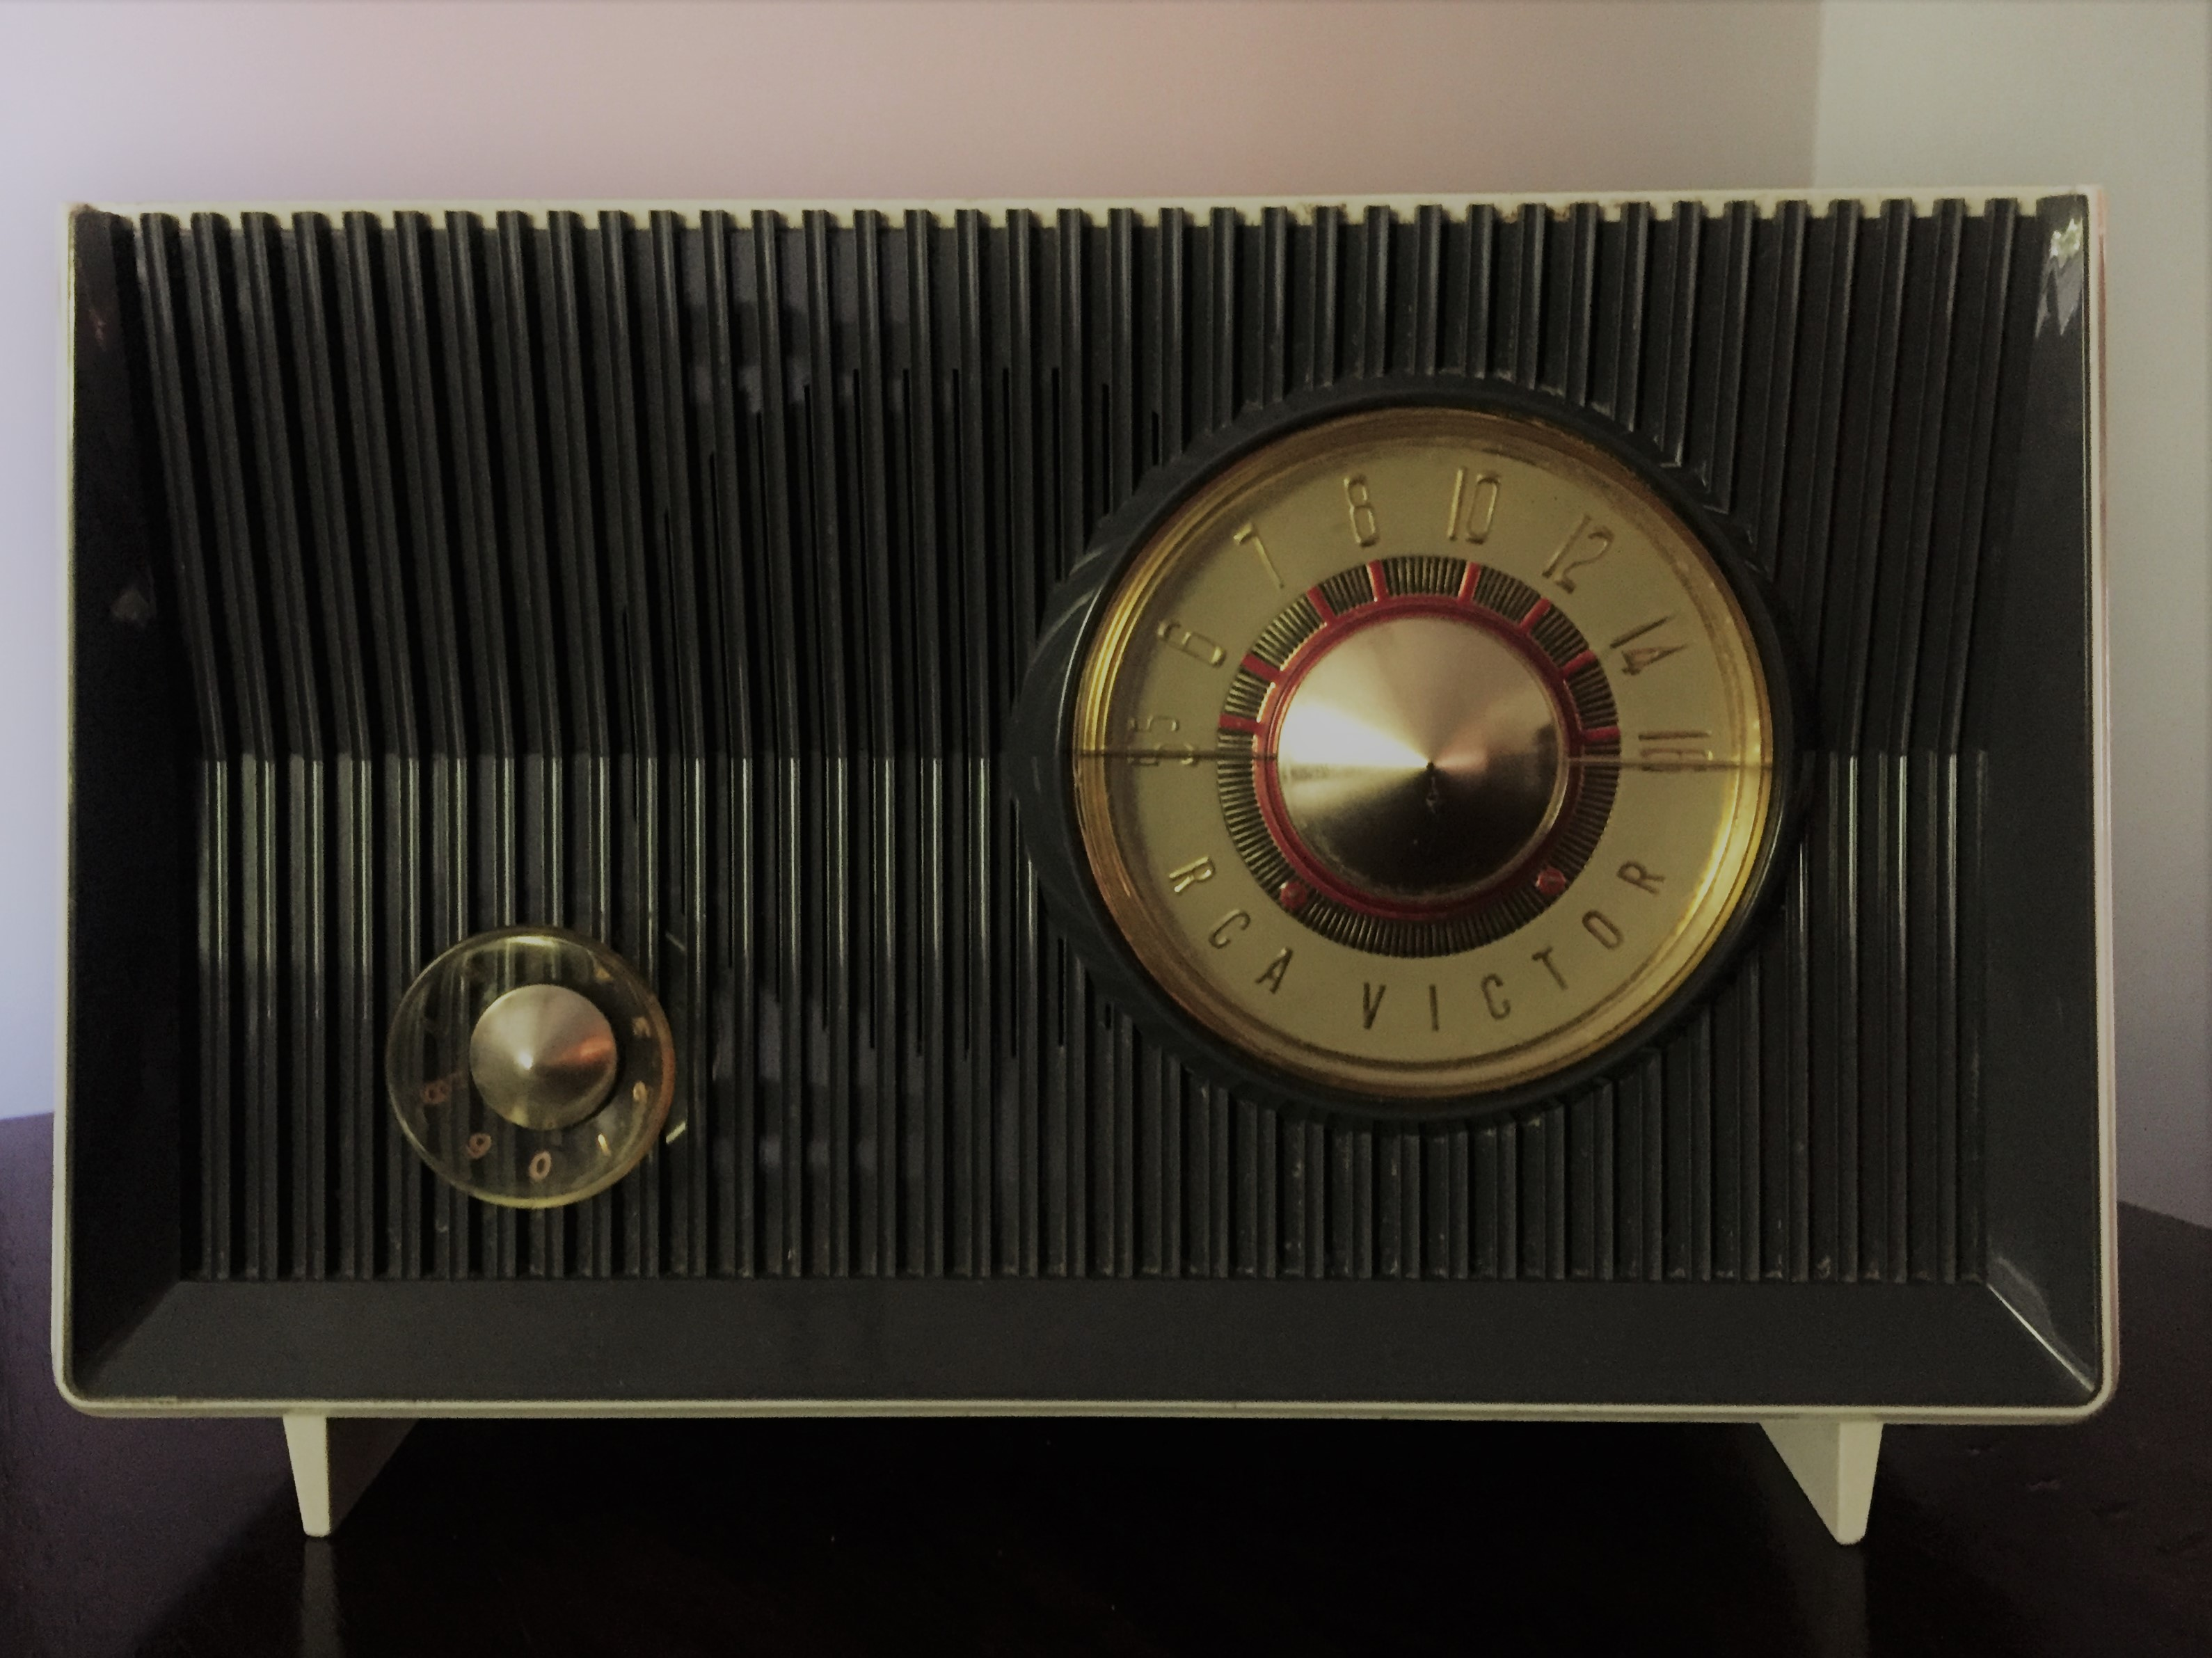 Space Age Cool.  This RCA Victor AM radio, model X-2JE, was manufactured in 1959.  (Photo by J. Schafer)